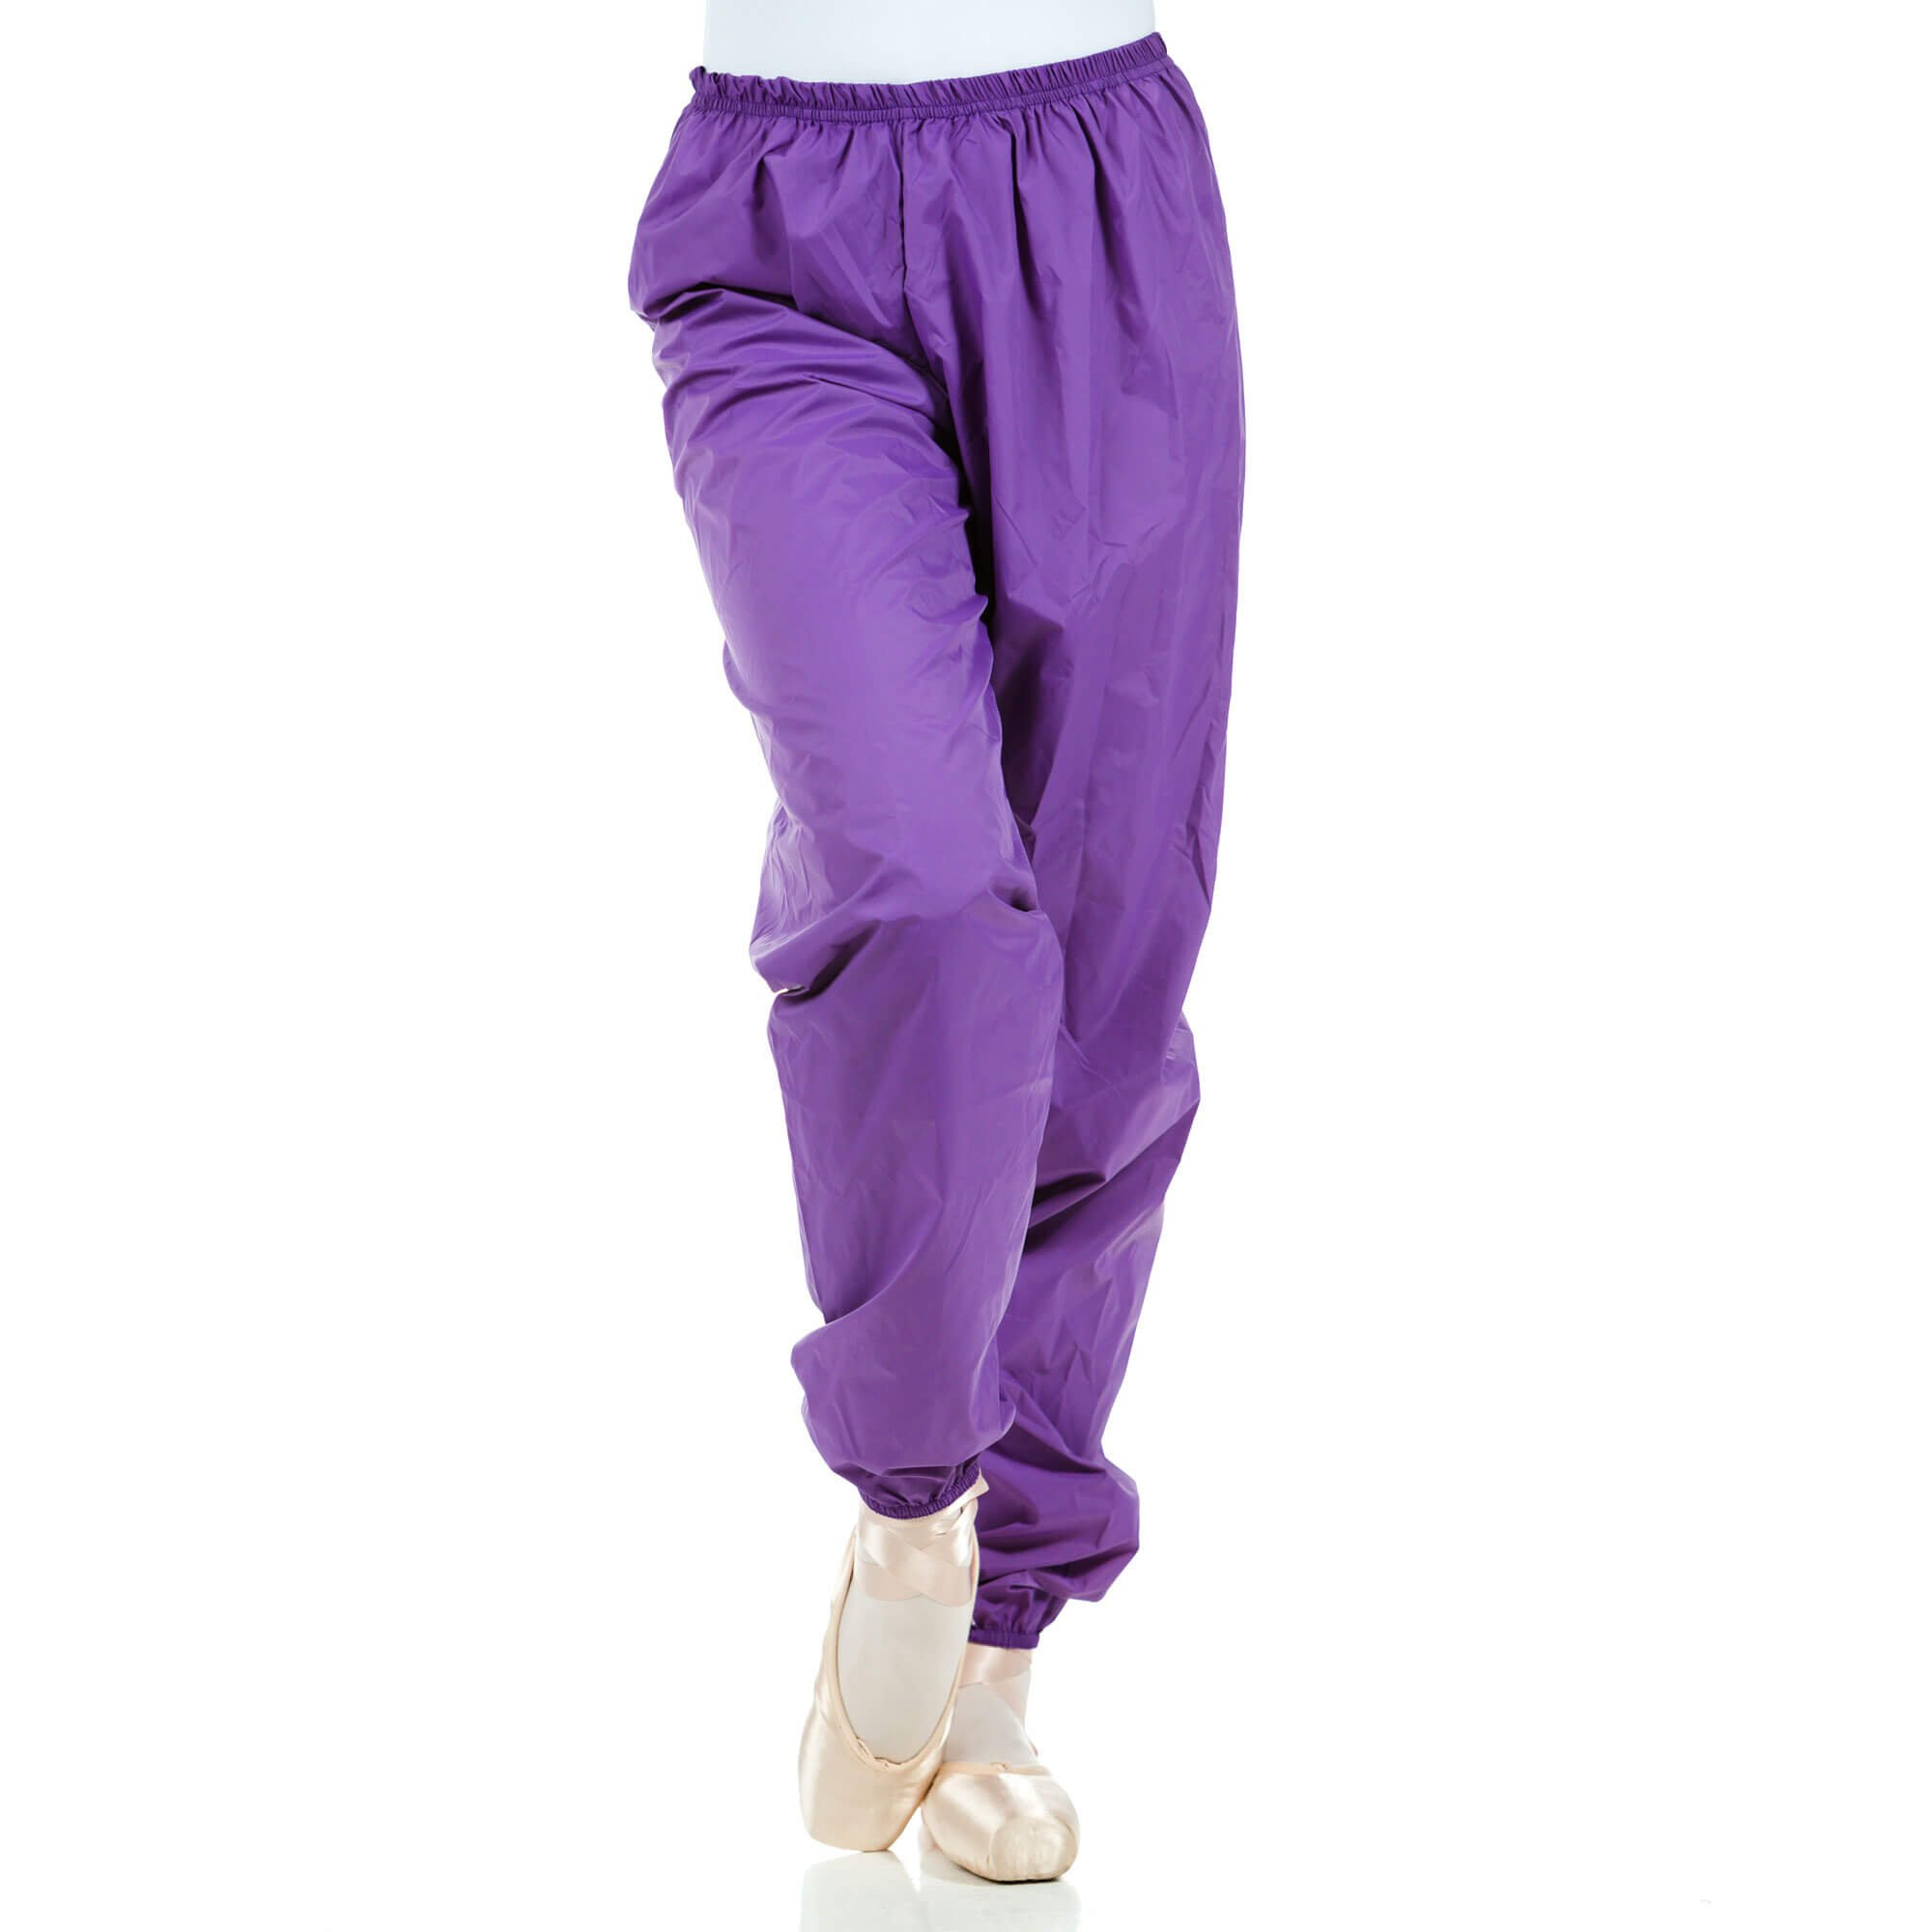 Coesi Danza Long Waist & Ankle Band Warm-up Sweatpants